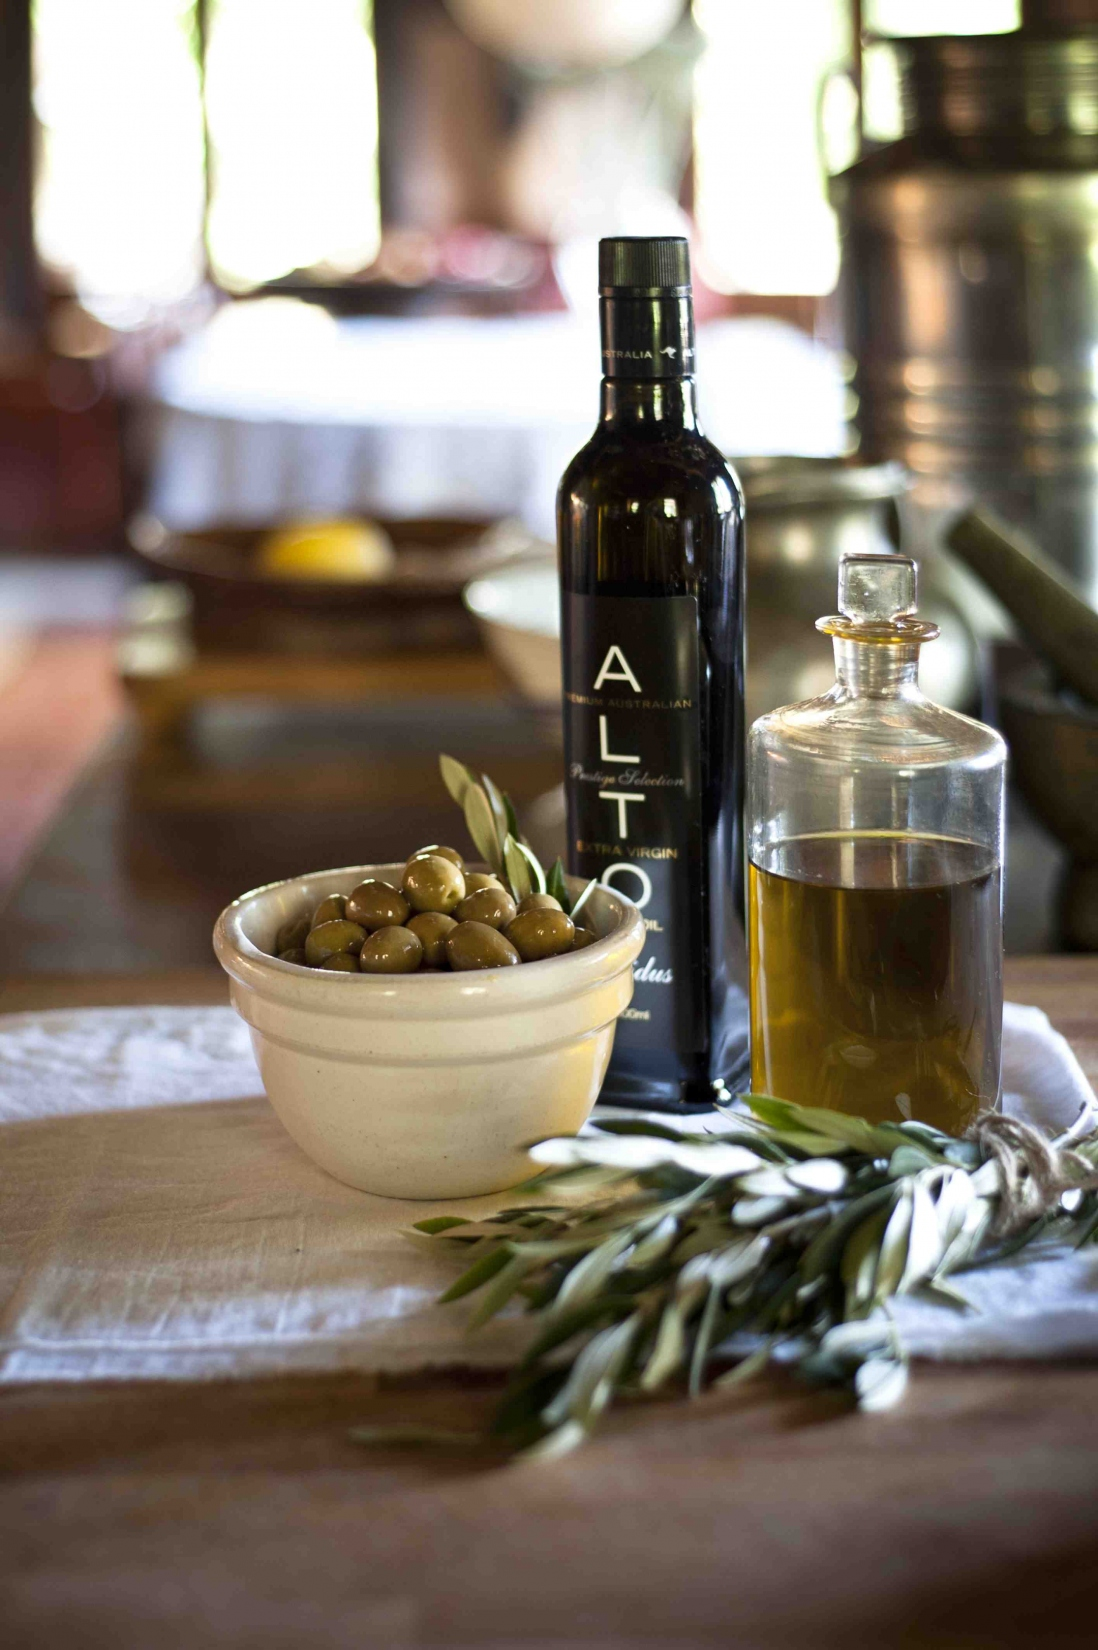 Bottles of olive oil and dish of olives